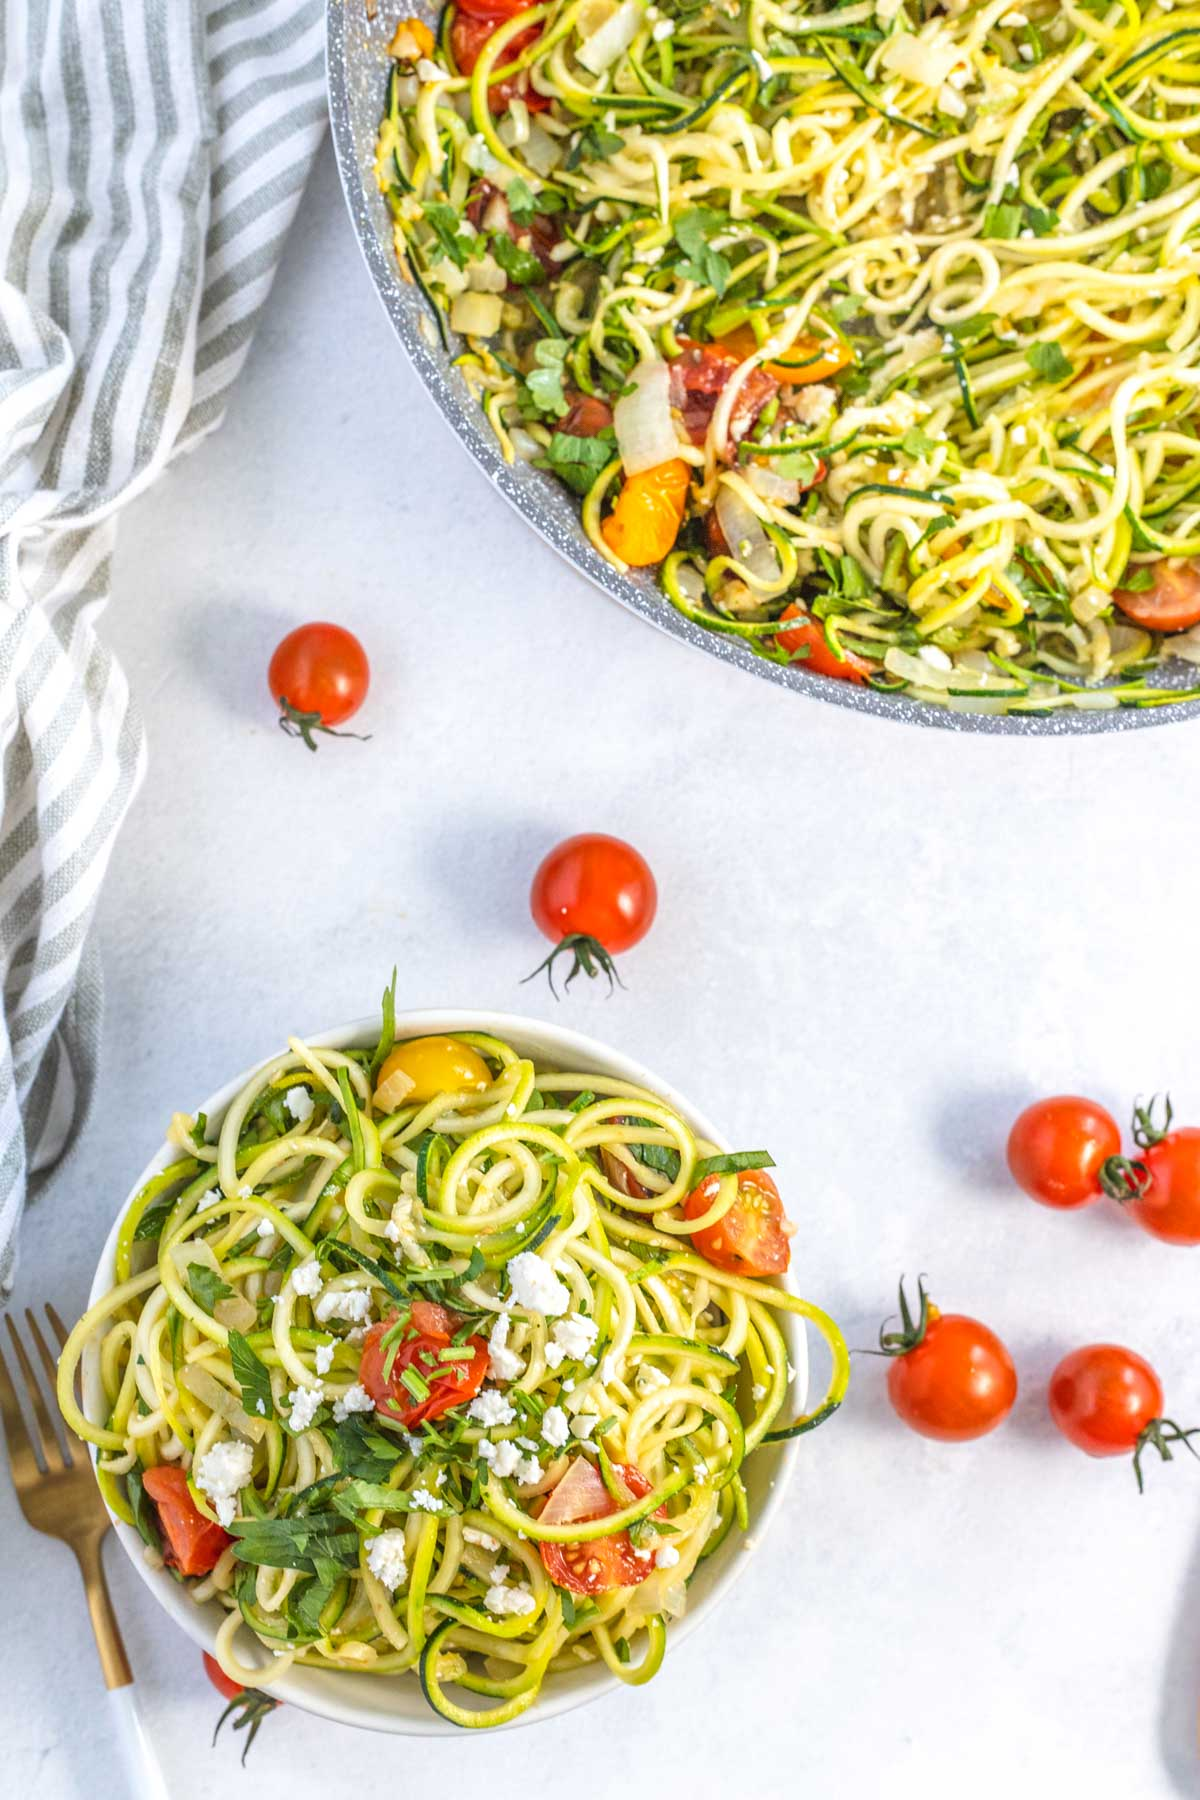 fresh parsley and feta atop zucchini pasta in a bowl